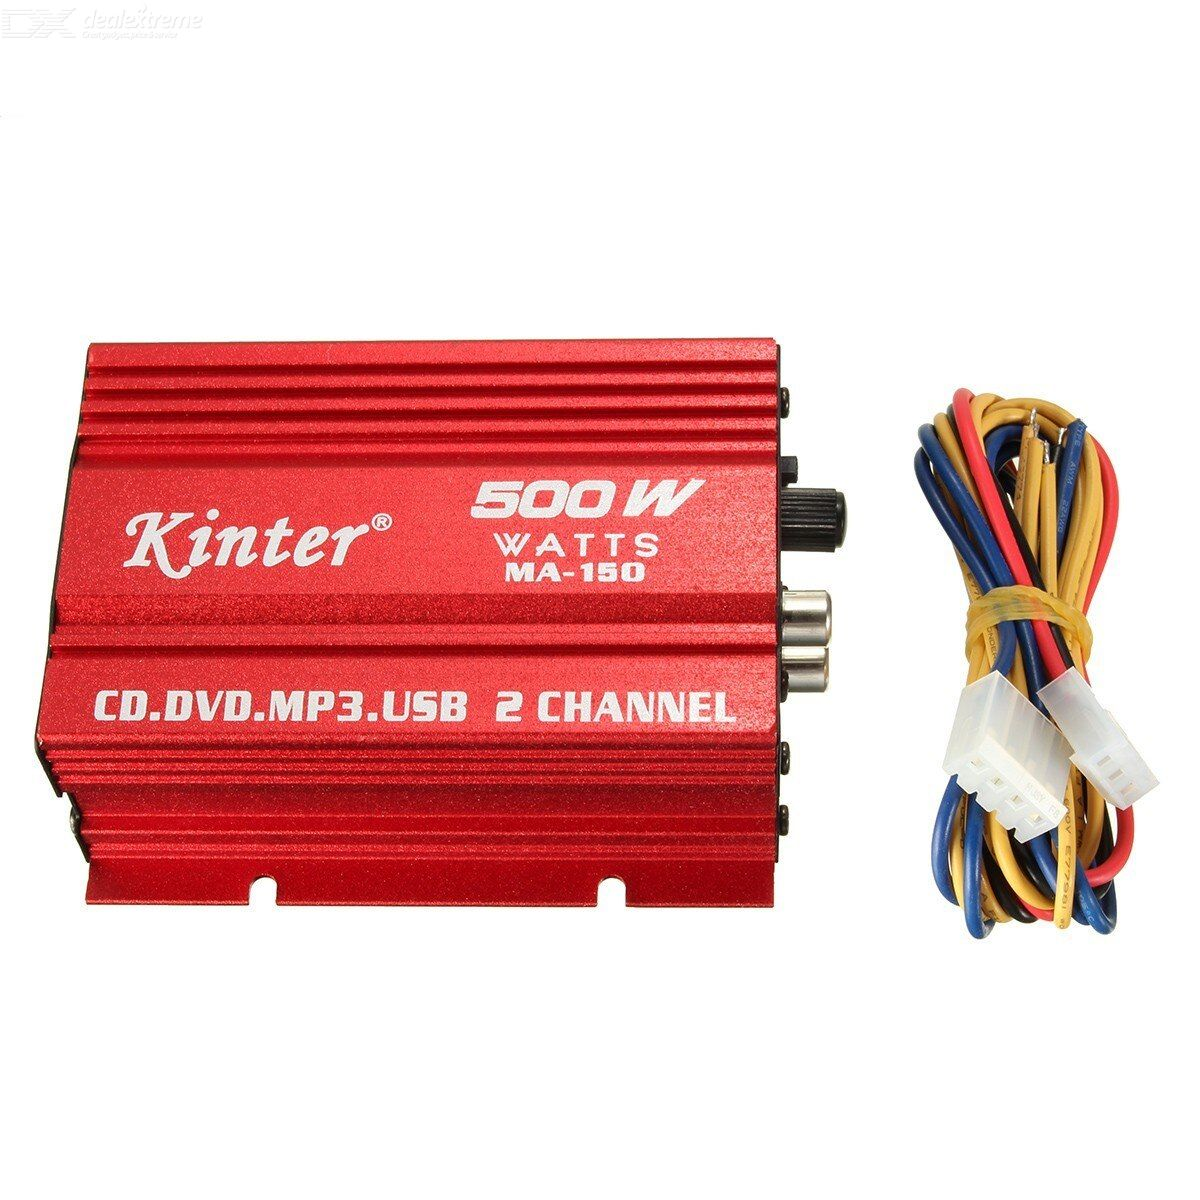 Kingerma150 small power amplifier 12V Car Audio hifi power amplifier with 5V output